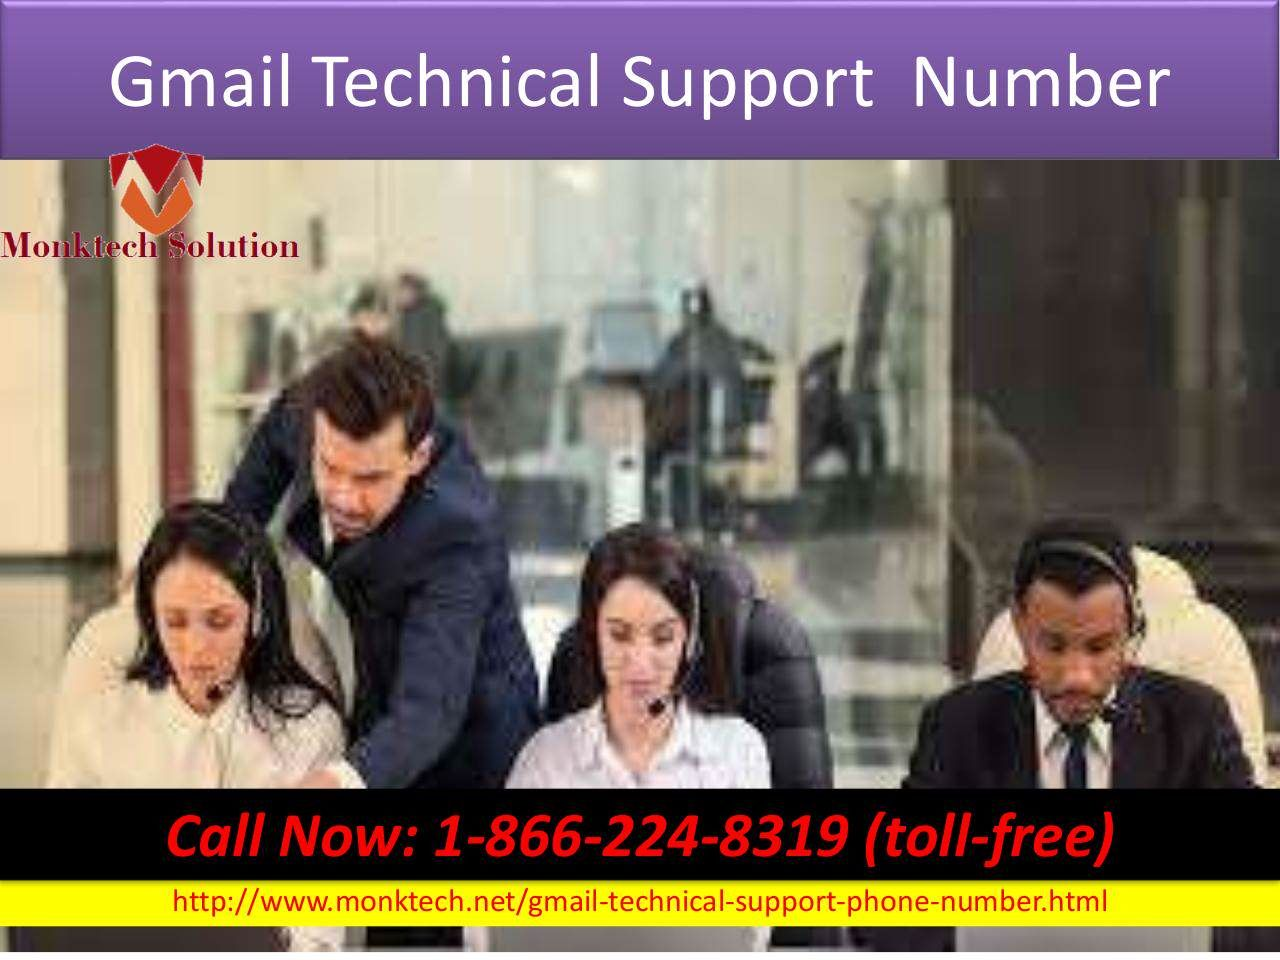 Gmail Tech Support Number 1-866-224-8319 help of troubleshoot issues #GmailTechsupportNumber #GmailTechnicalSupportNumber #GmailPhoneNumber Connect our Tech Support Team, Dial Gmail Tech Support Number 1-866-224-8319. Our Gmail team provides an instant solution which will help you to recover your Gmail password,change your password,and any type of your Gmail account issues . For More Detail visit our website http://www.monktech.net/gmail-technical-support-phone-number.html